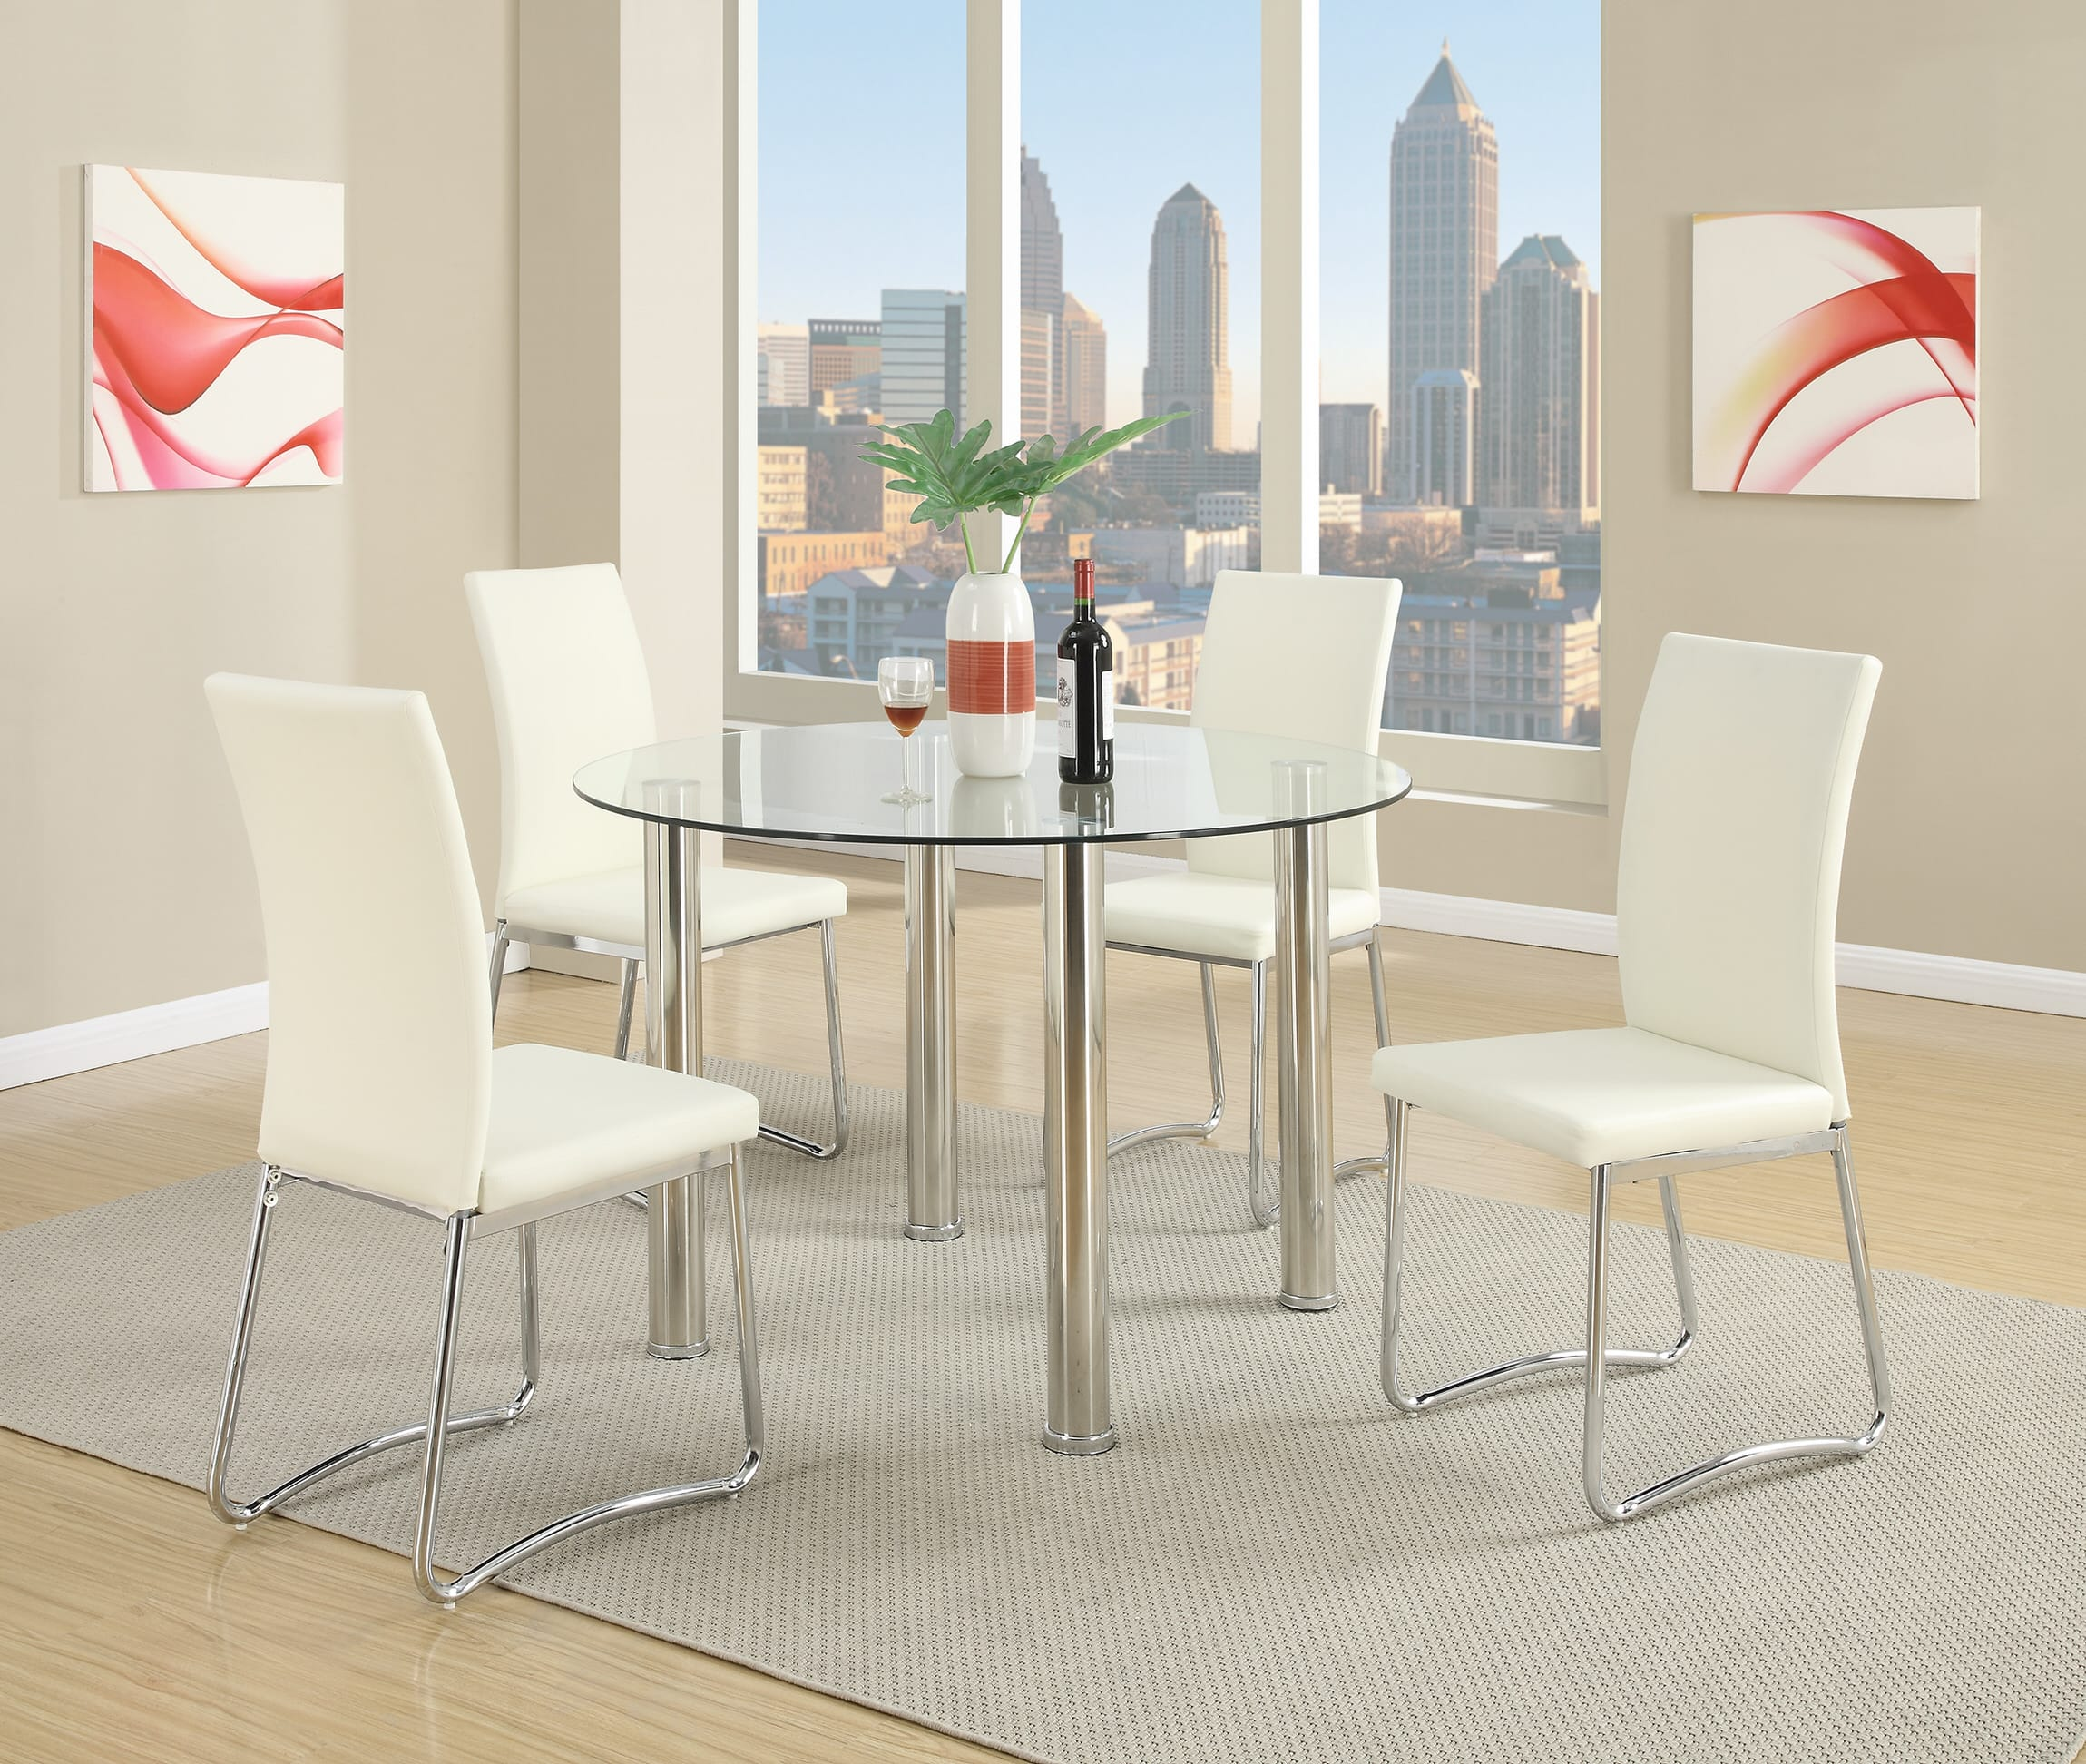 White Dining Room Chair F1438 White Dining Chair Set Of 2 By Poundex